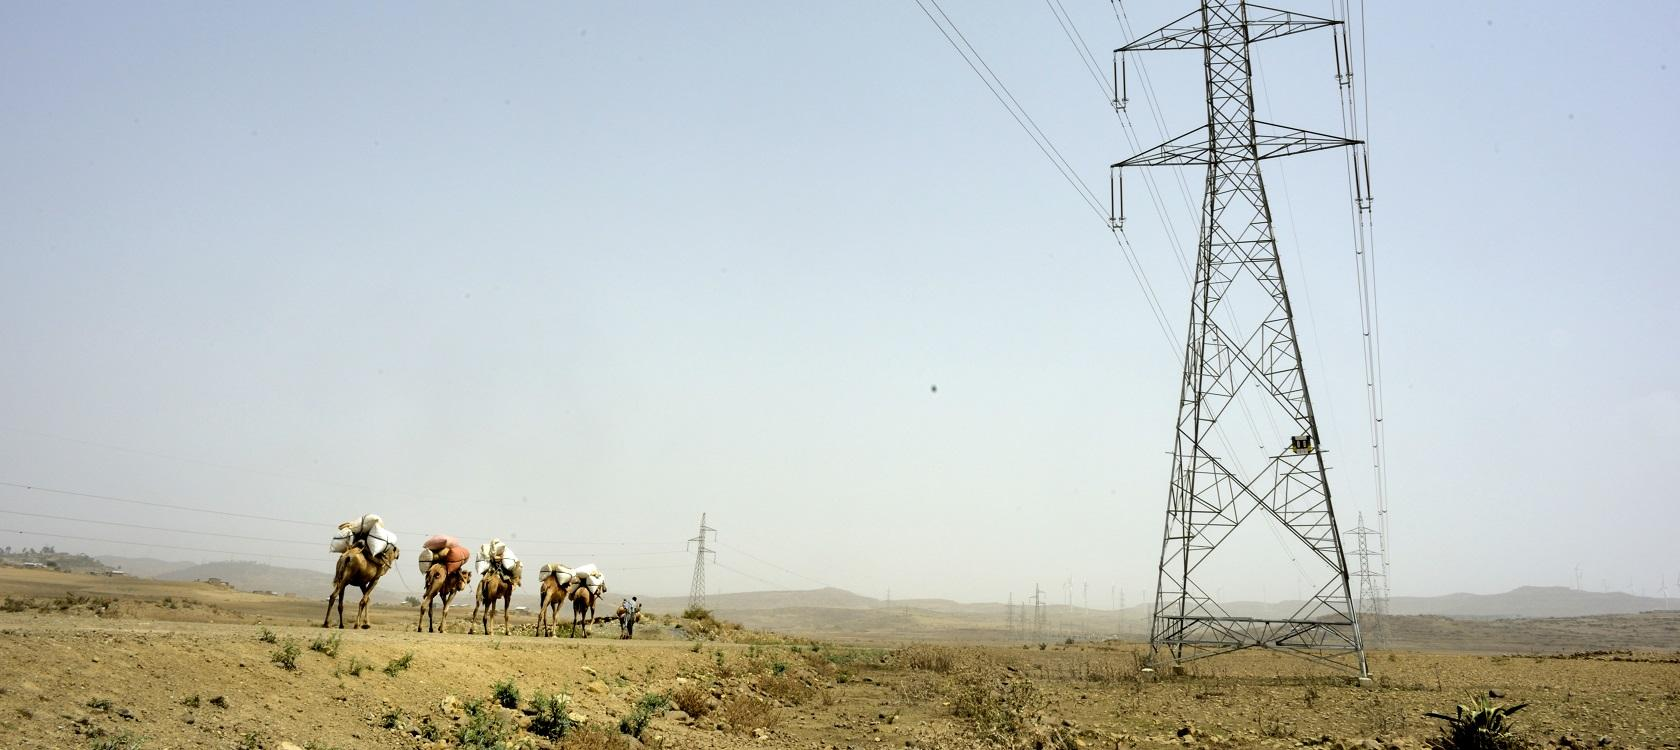 Power lines and electricity in Africa, and caravans, energy